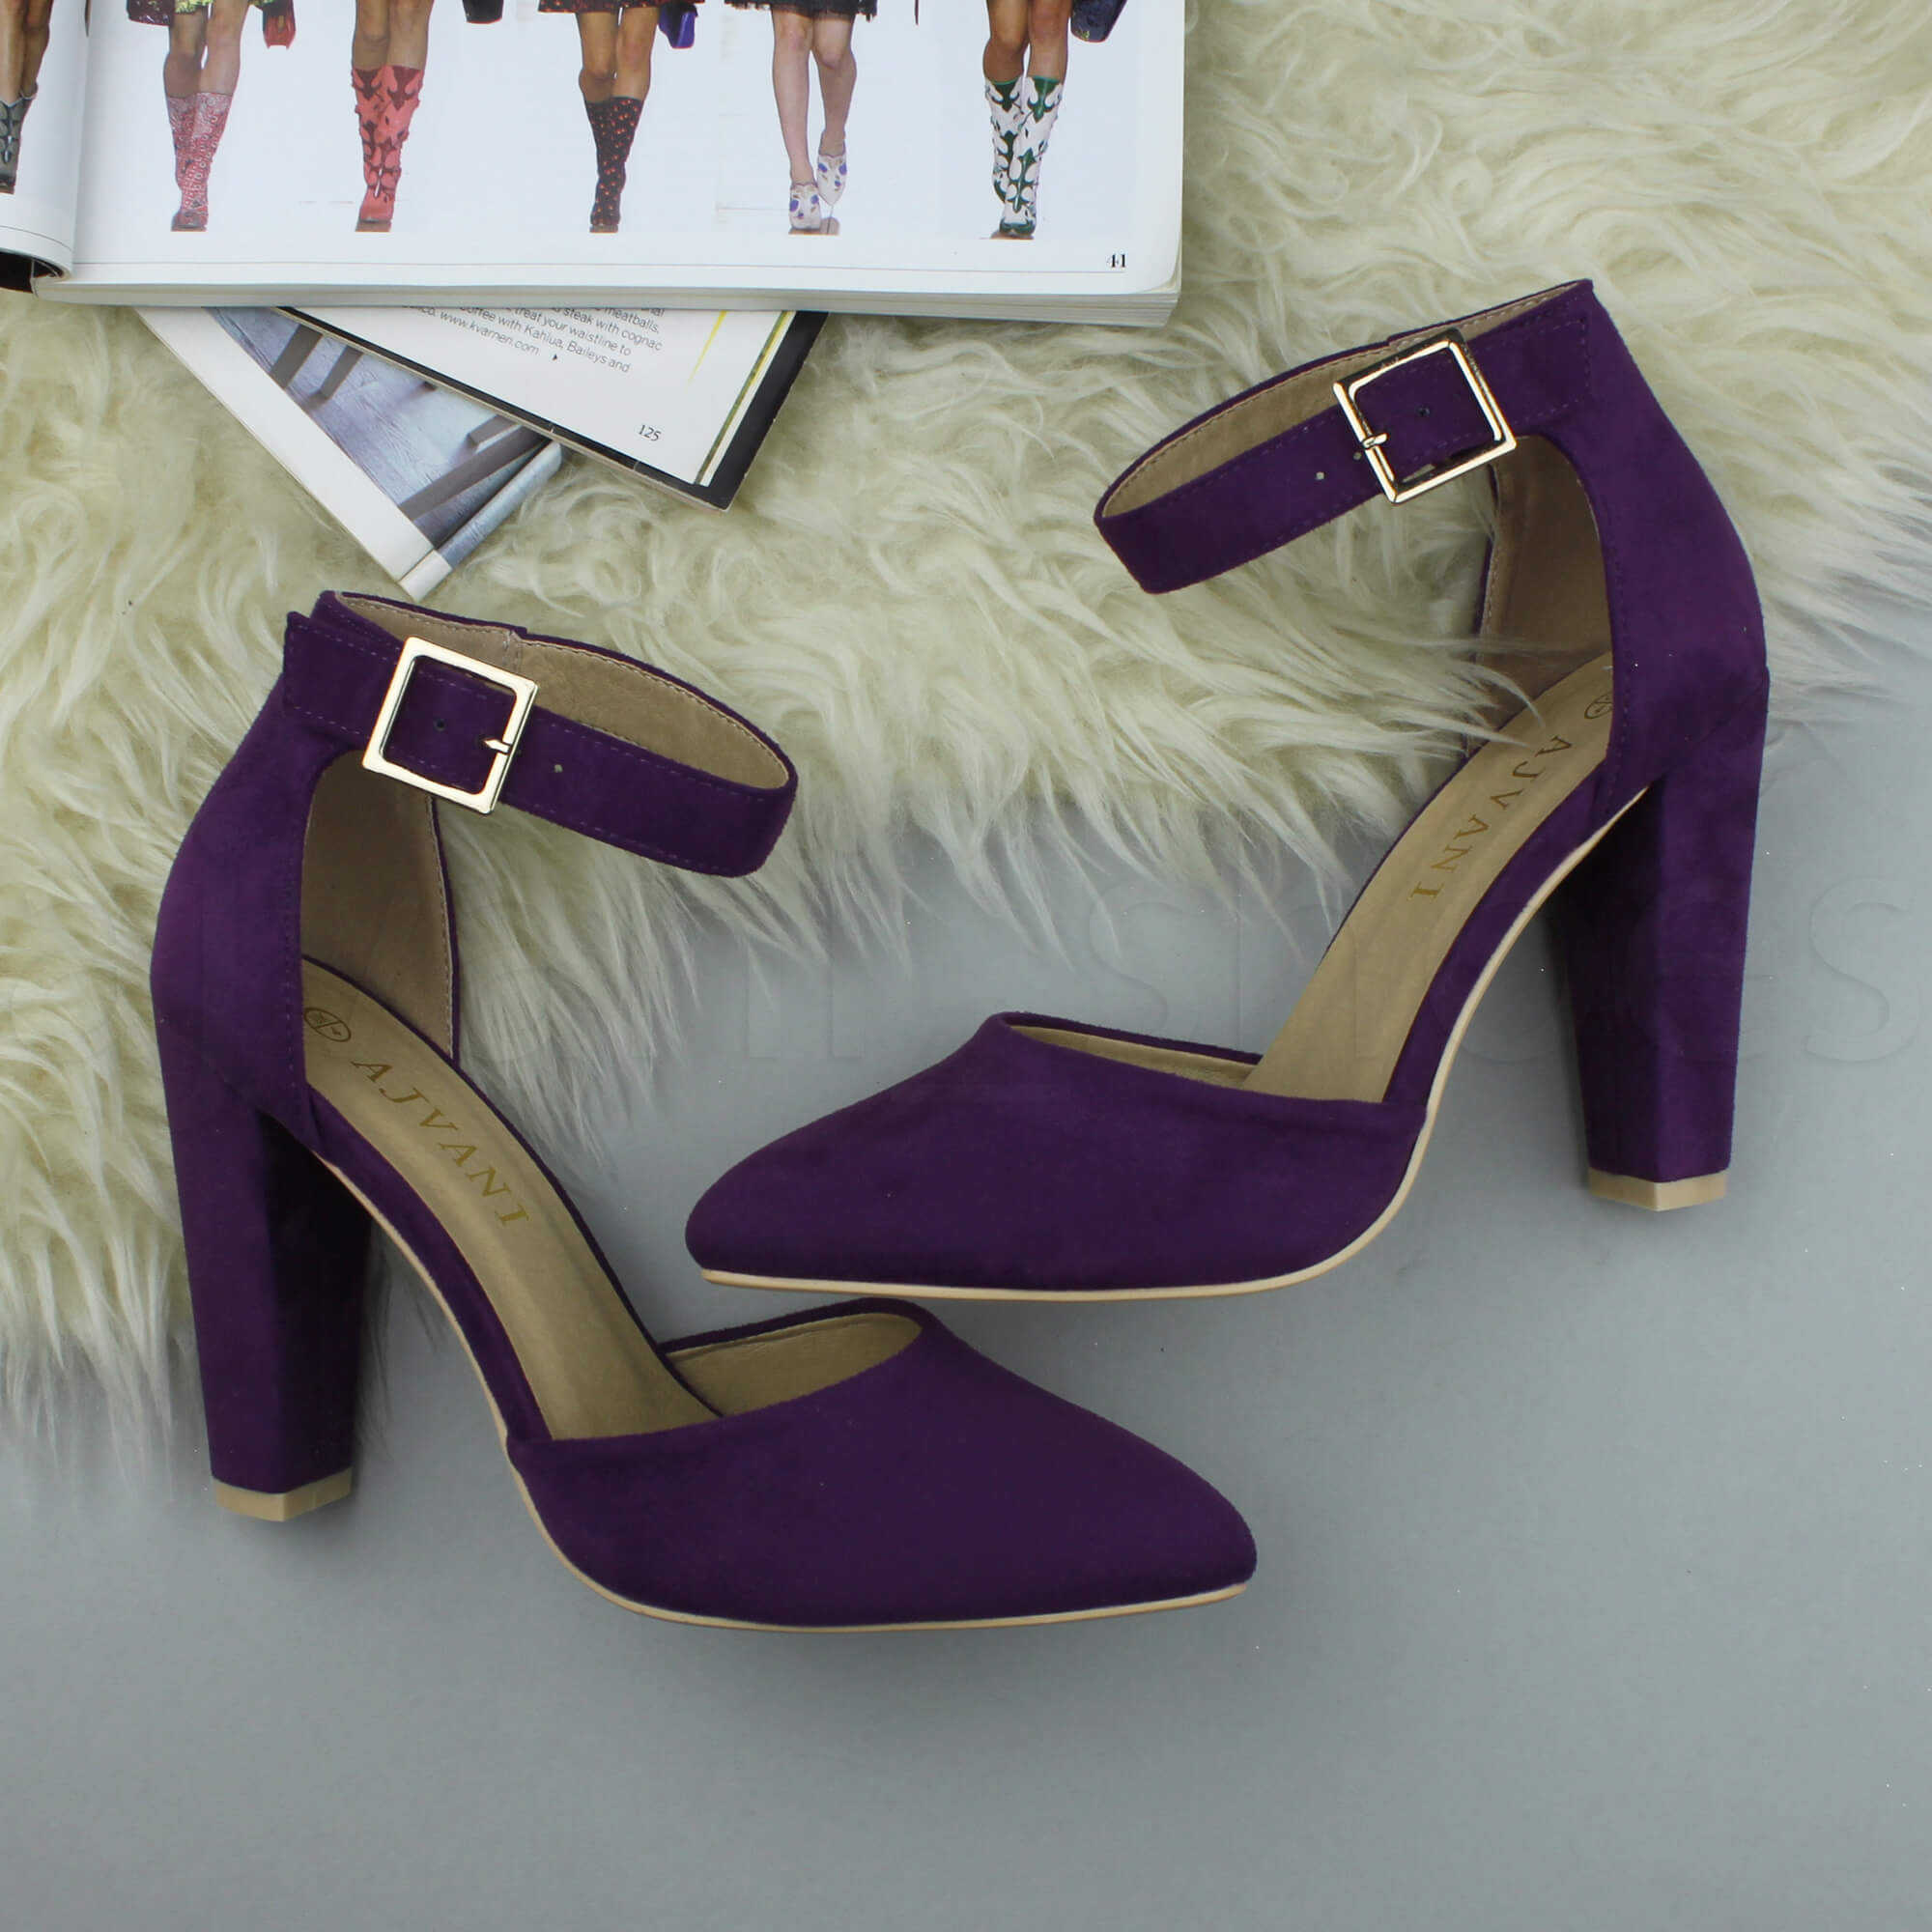 WOMENS-LADIES-HIGH-BLOCK-HEEL-ANKLE-STRAP-BUCKLE-POINTED-COURT-SHOES-SIZE thumbnail 124